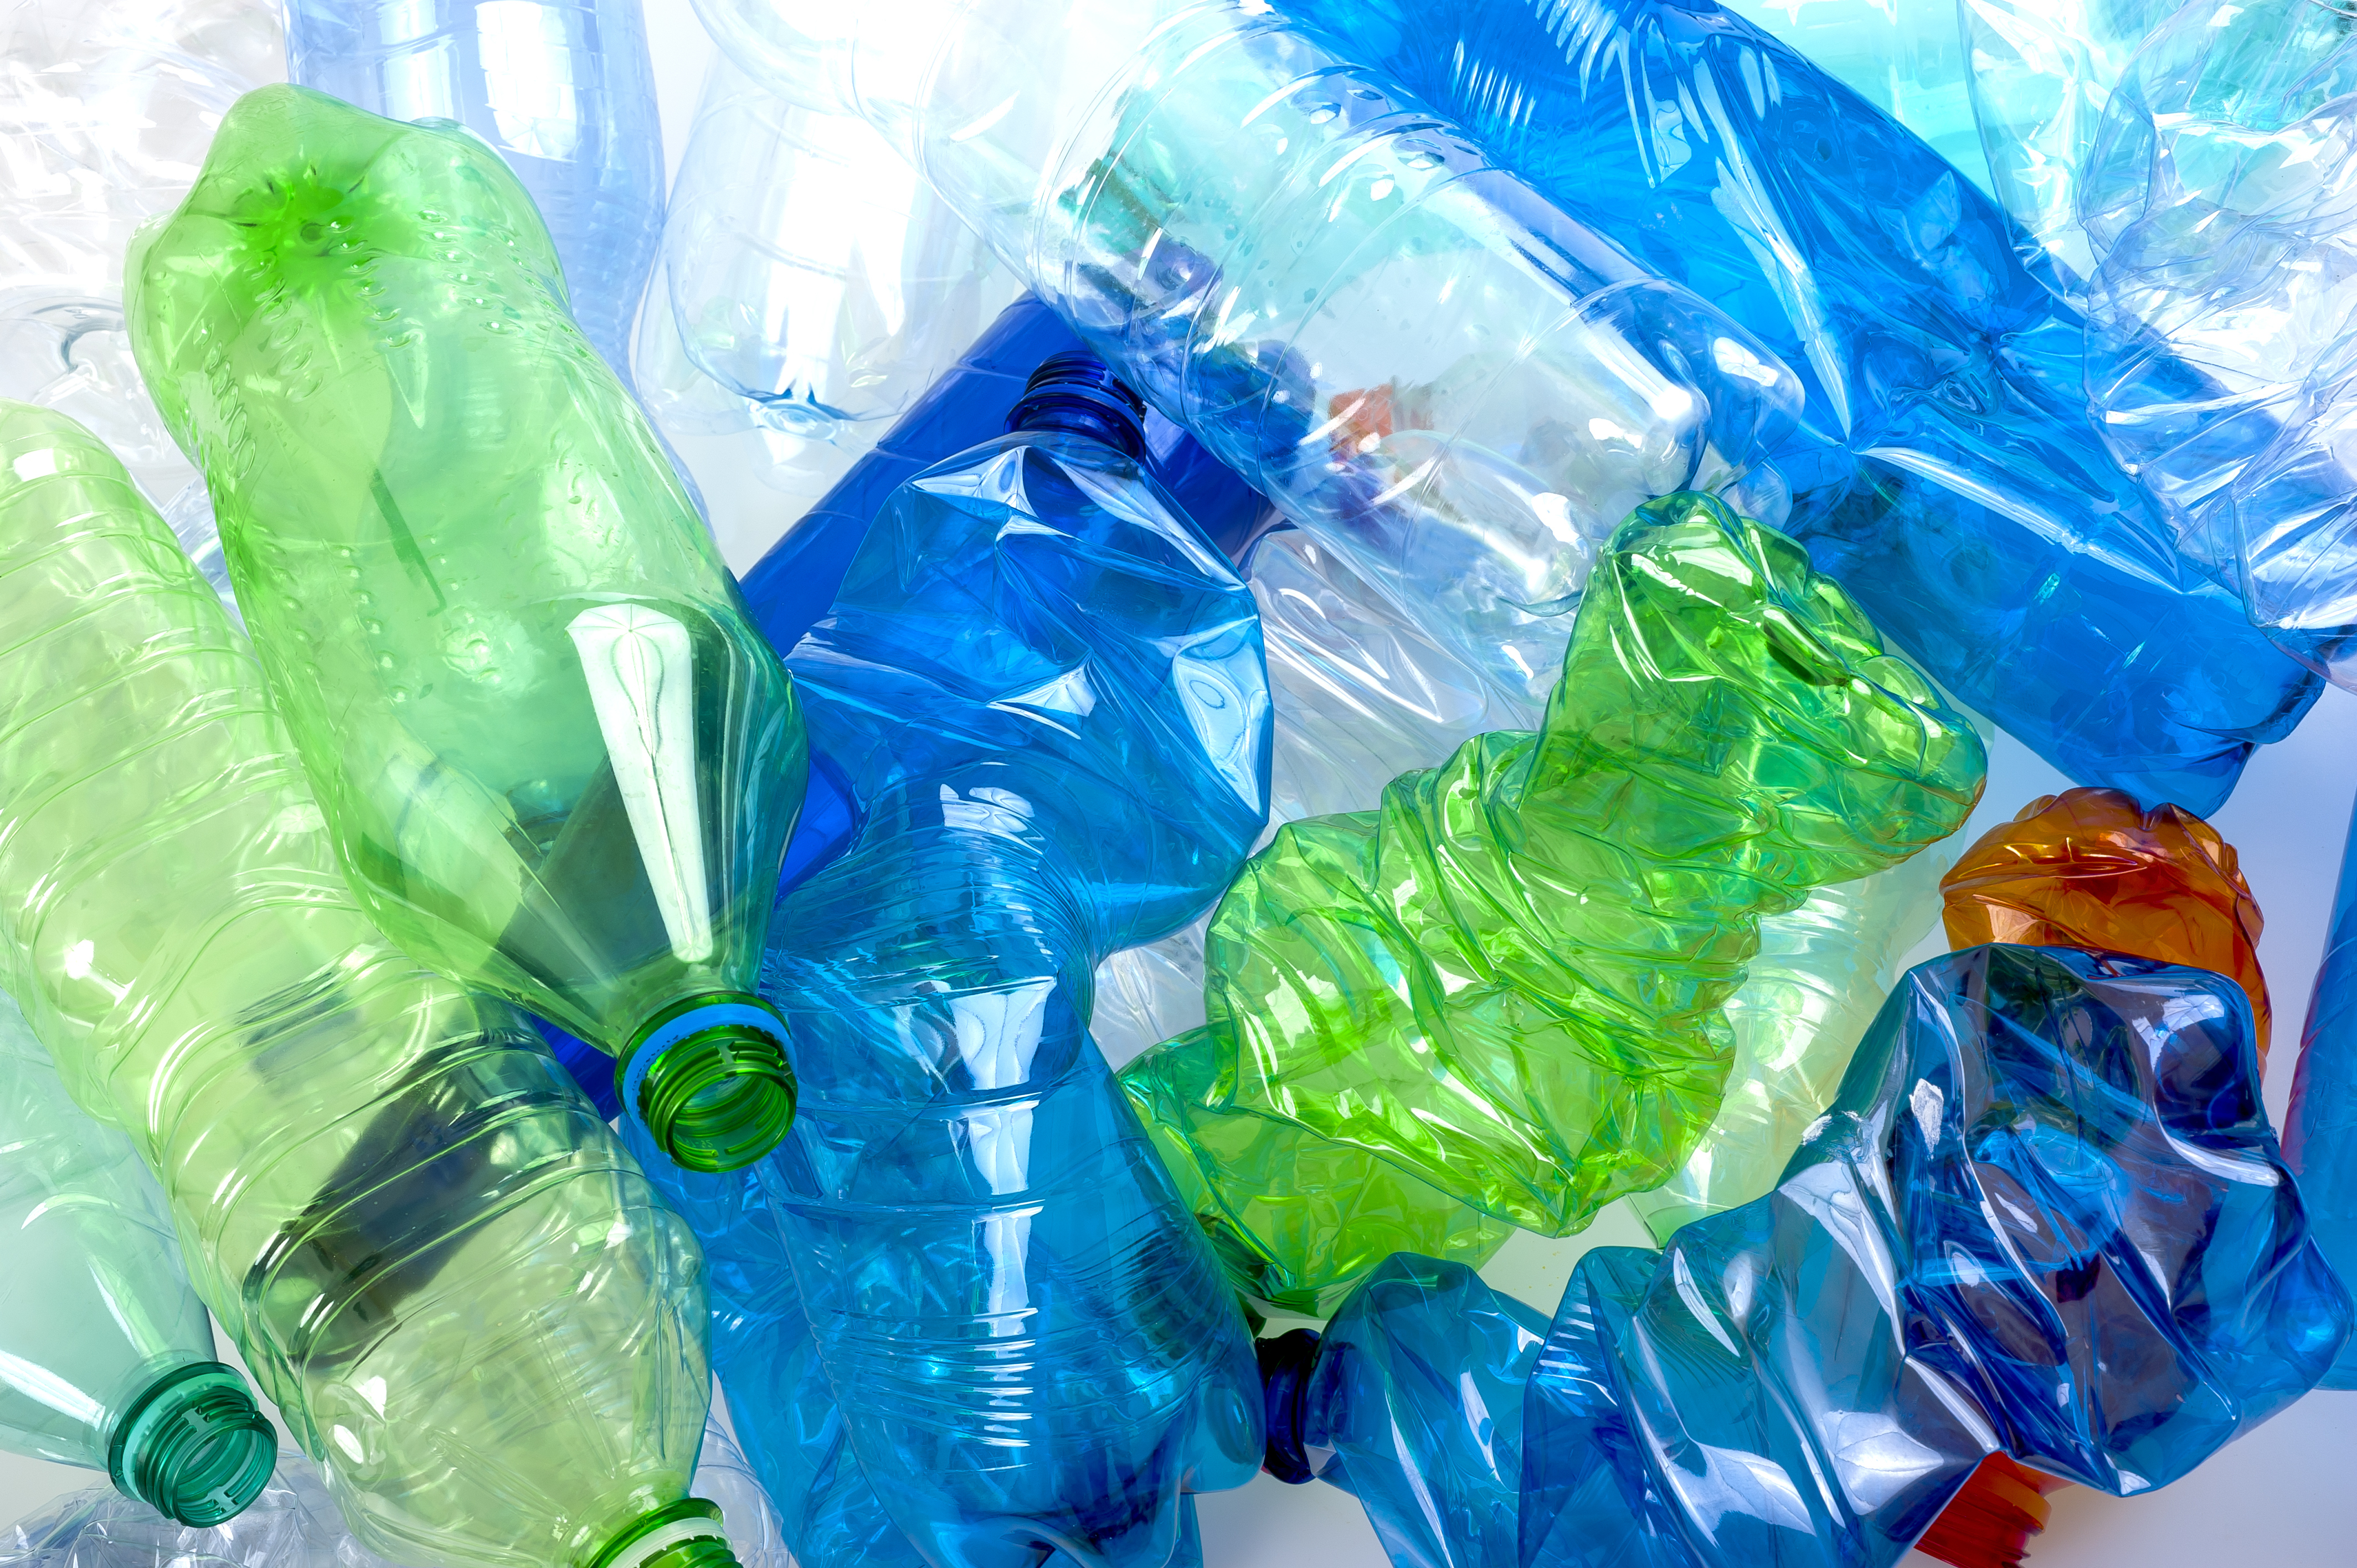 Recycling More Plastic Packaging Materials - Plastic Packaging Facts